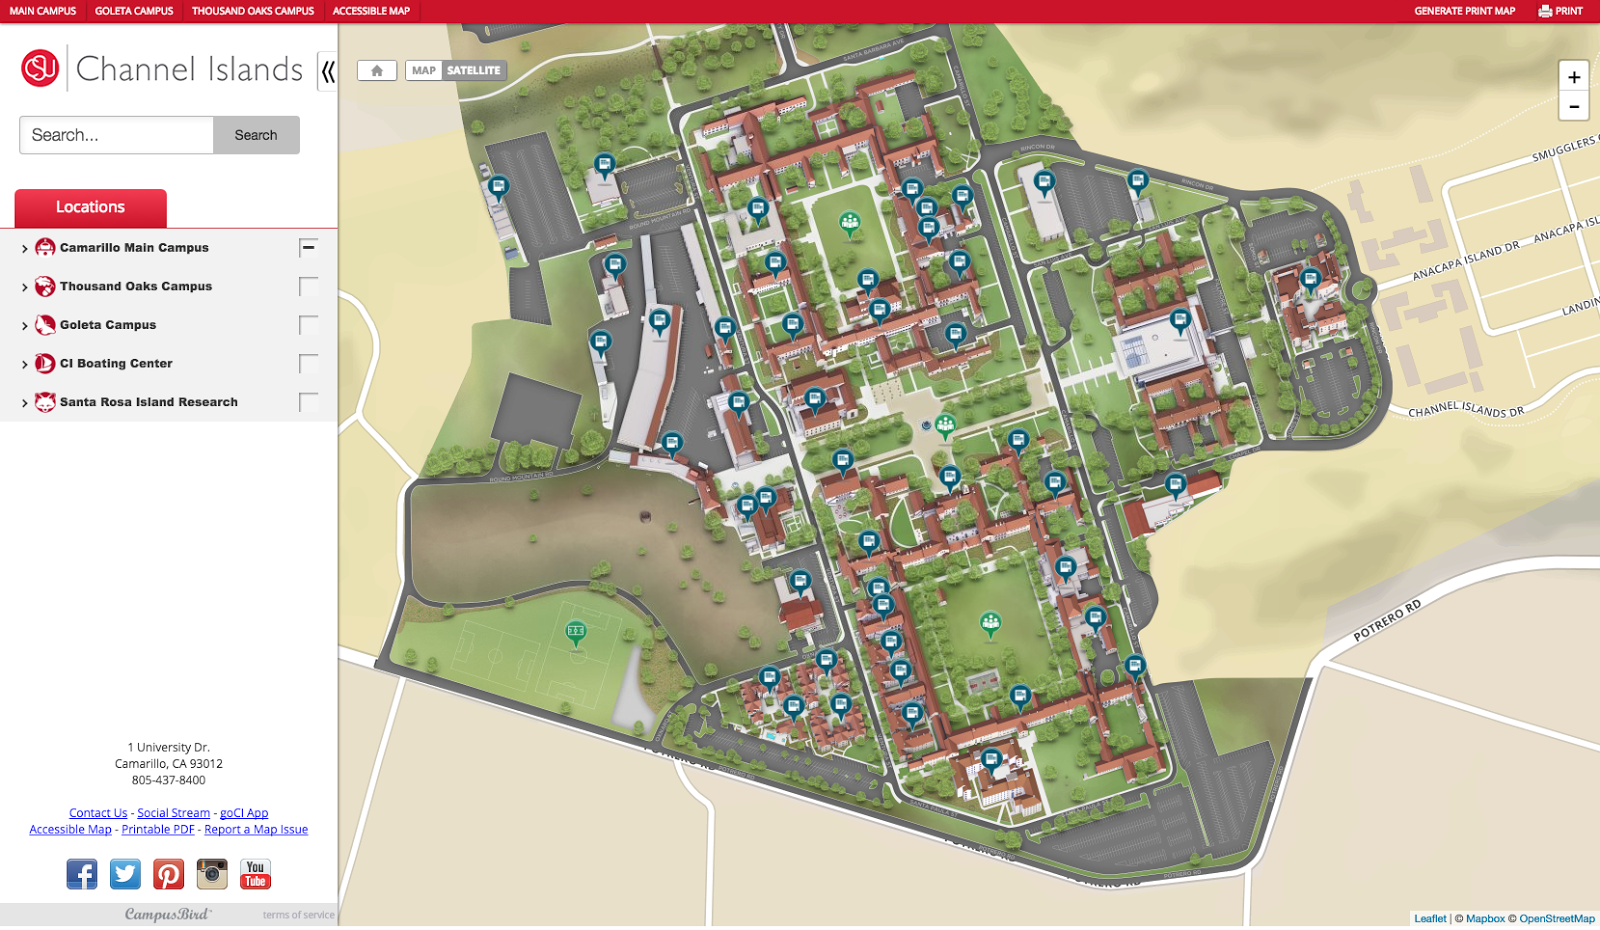 CSUCI Launches new interactive campus map | CI Web Services Blog on interactive cedar point map, interactive manhattan map, interactive italy map, interactive galena map, interactive map of uncw, interactive events map, msu interactive map, interactive livingston county map, interactive athens map,